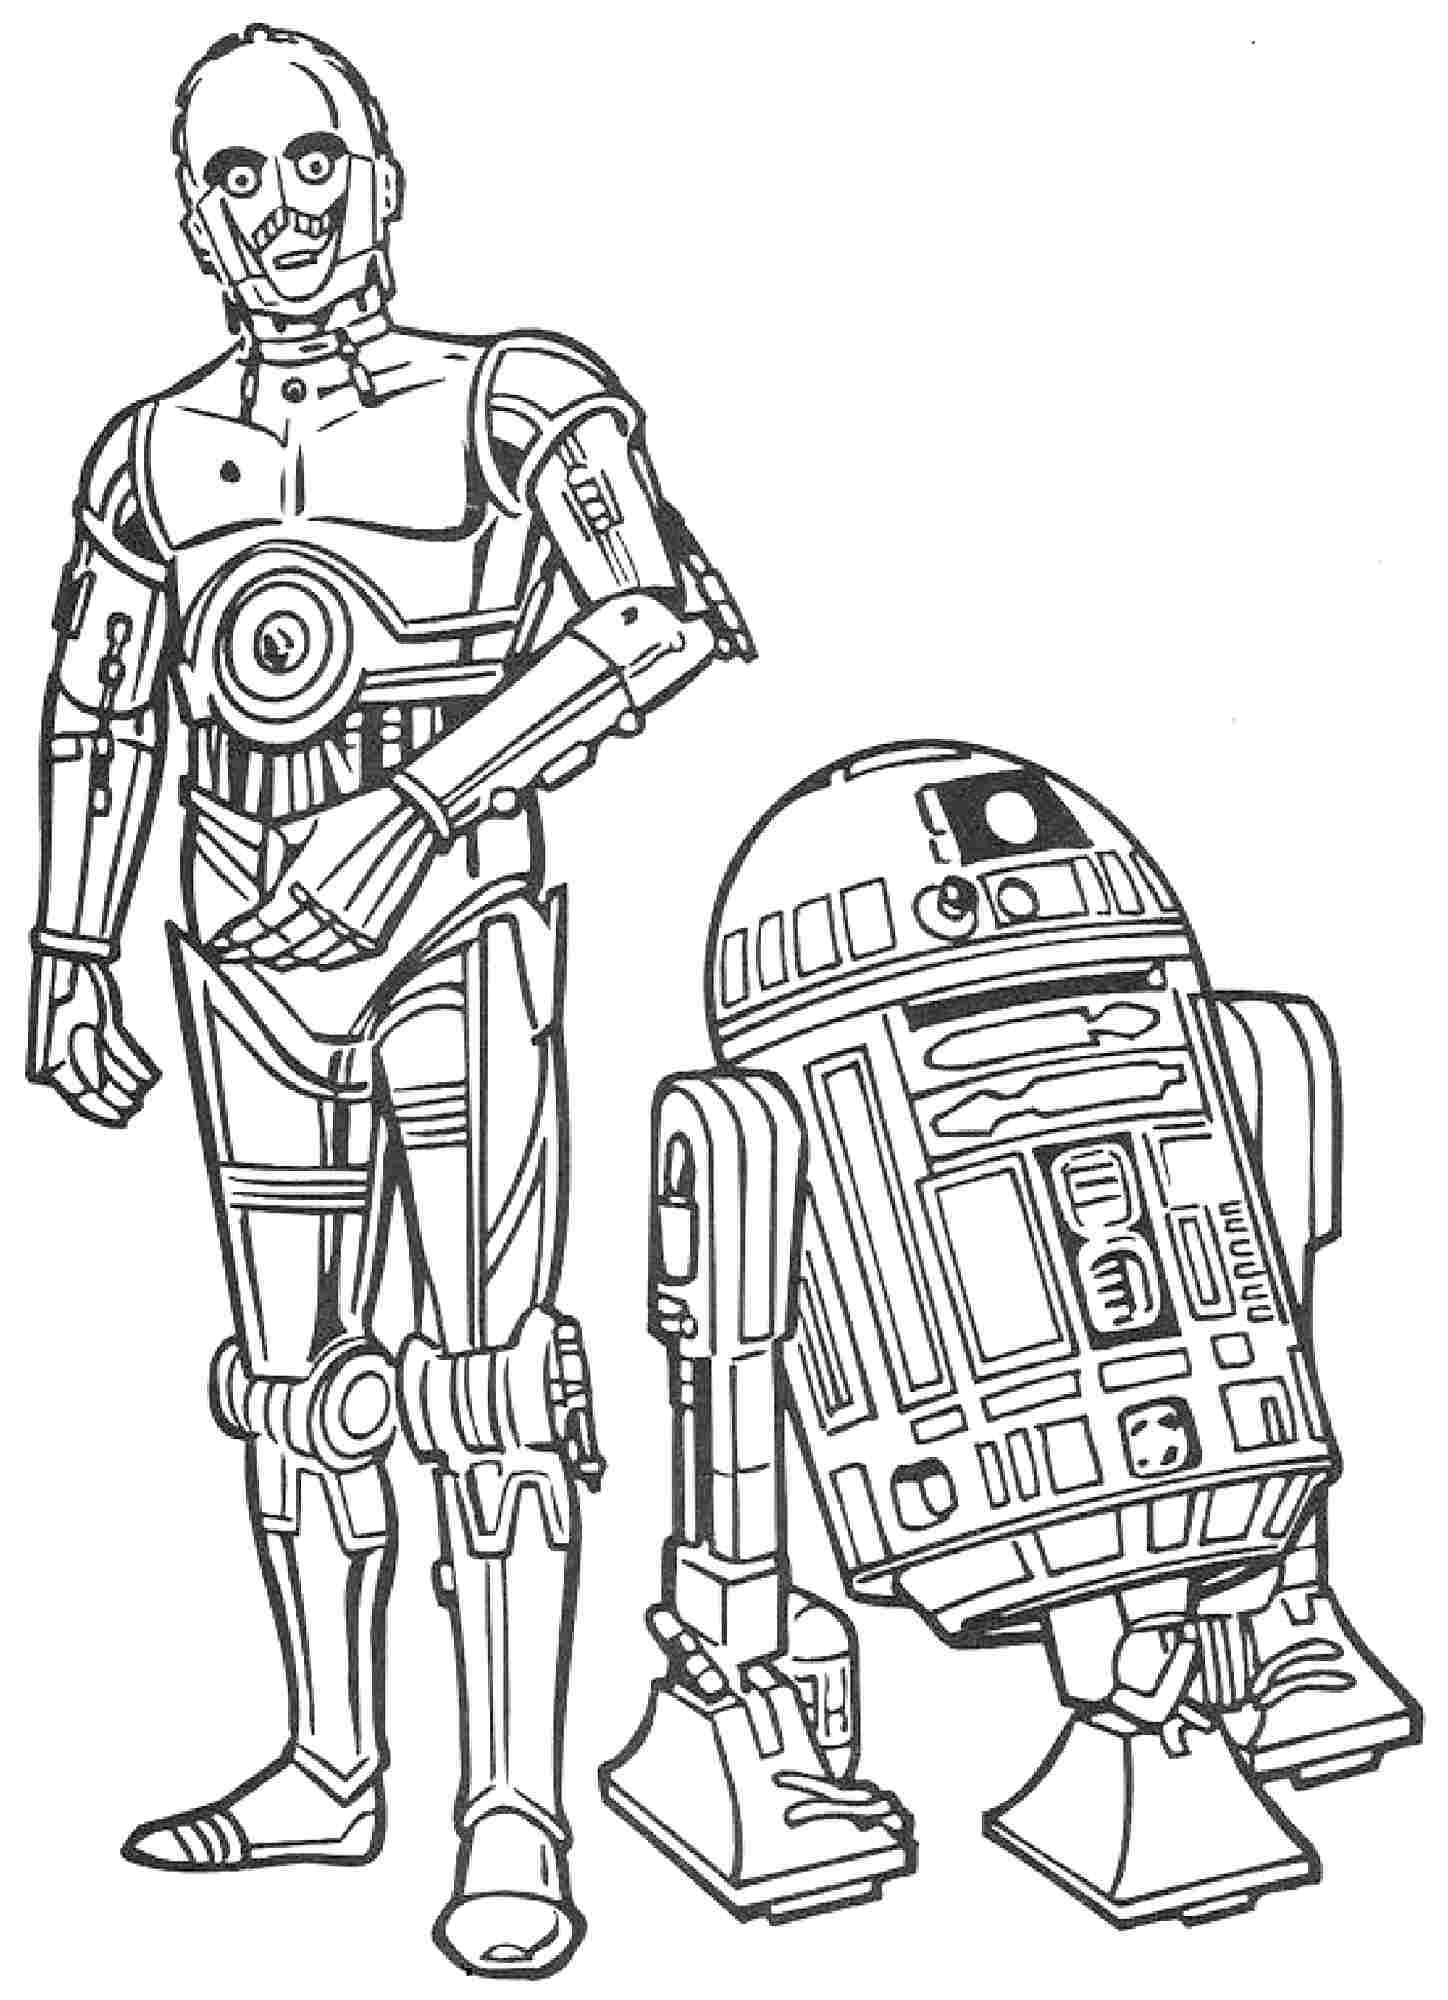 R2-D2 and C3-P0 #thesearenotthedriodsyouarelookingfor | Star Wars ...